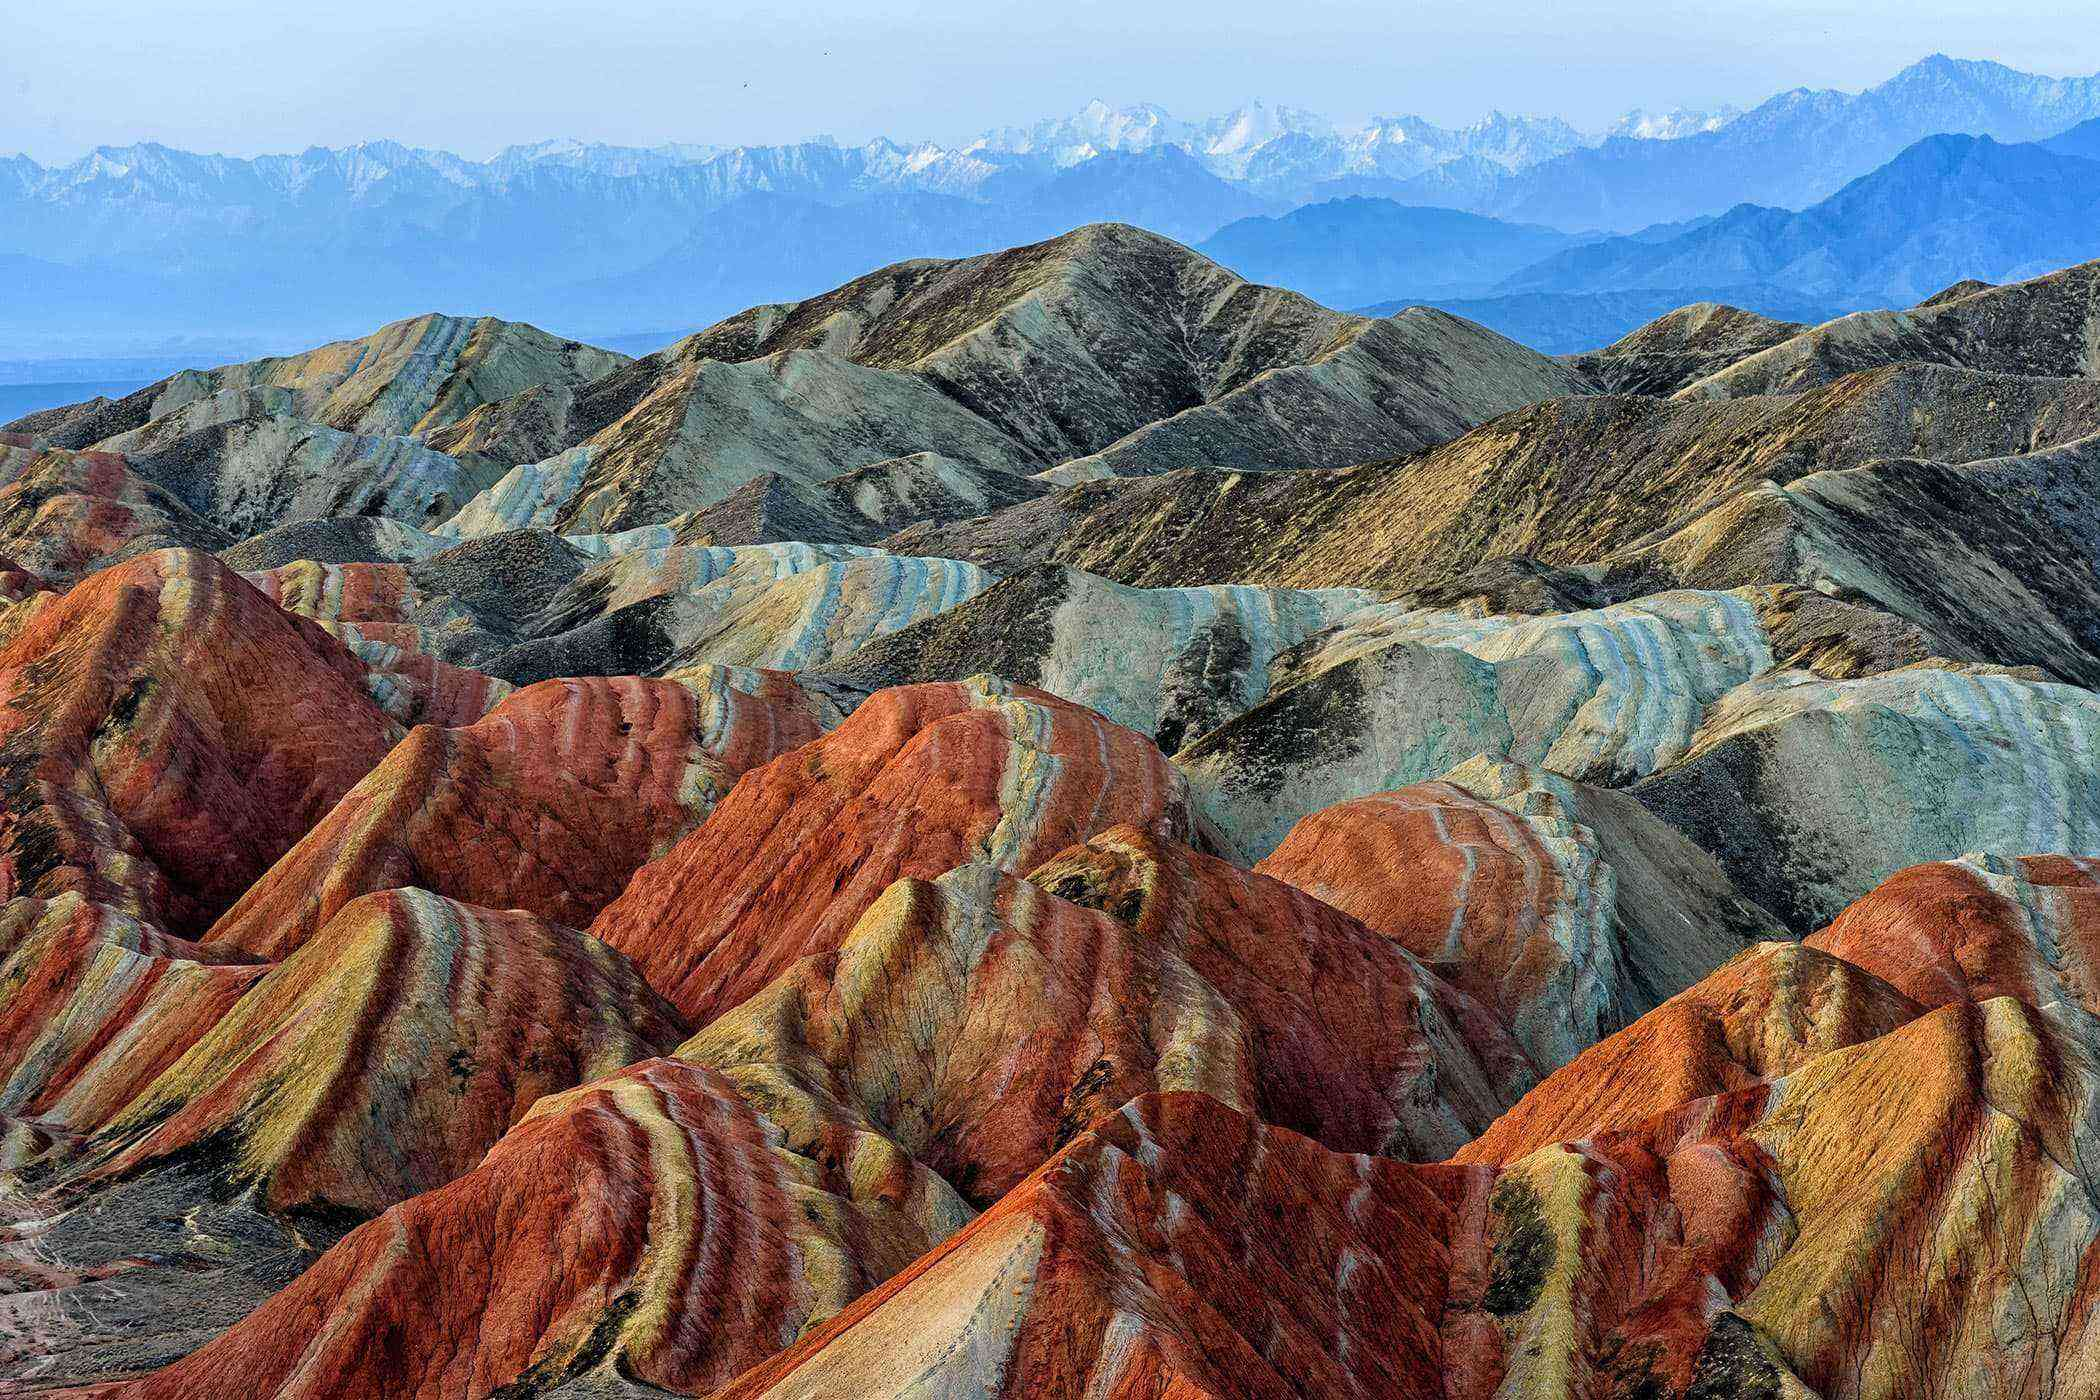 Out Of This World The Most Surreal Landscapes On The Planet - 25 breathtaking surreal landscapes here on earth